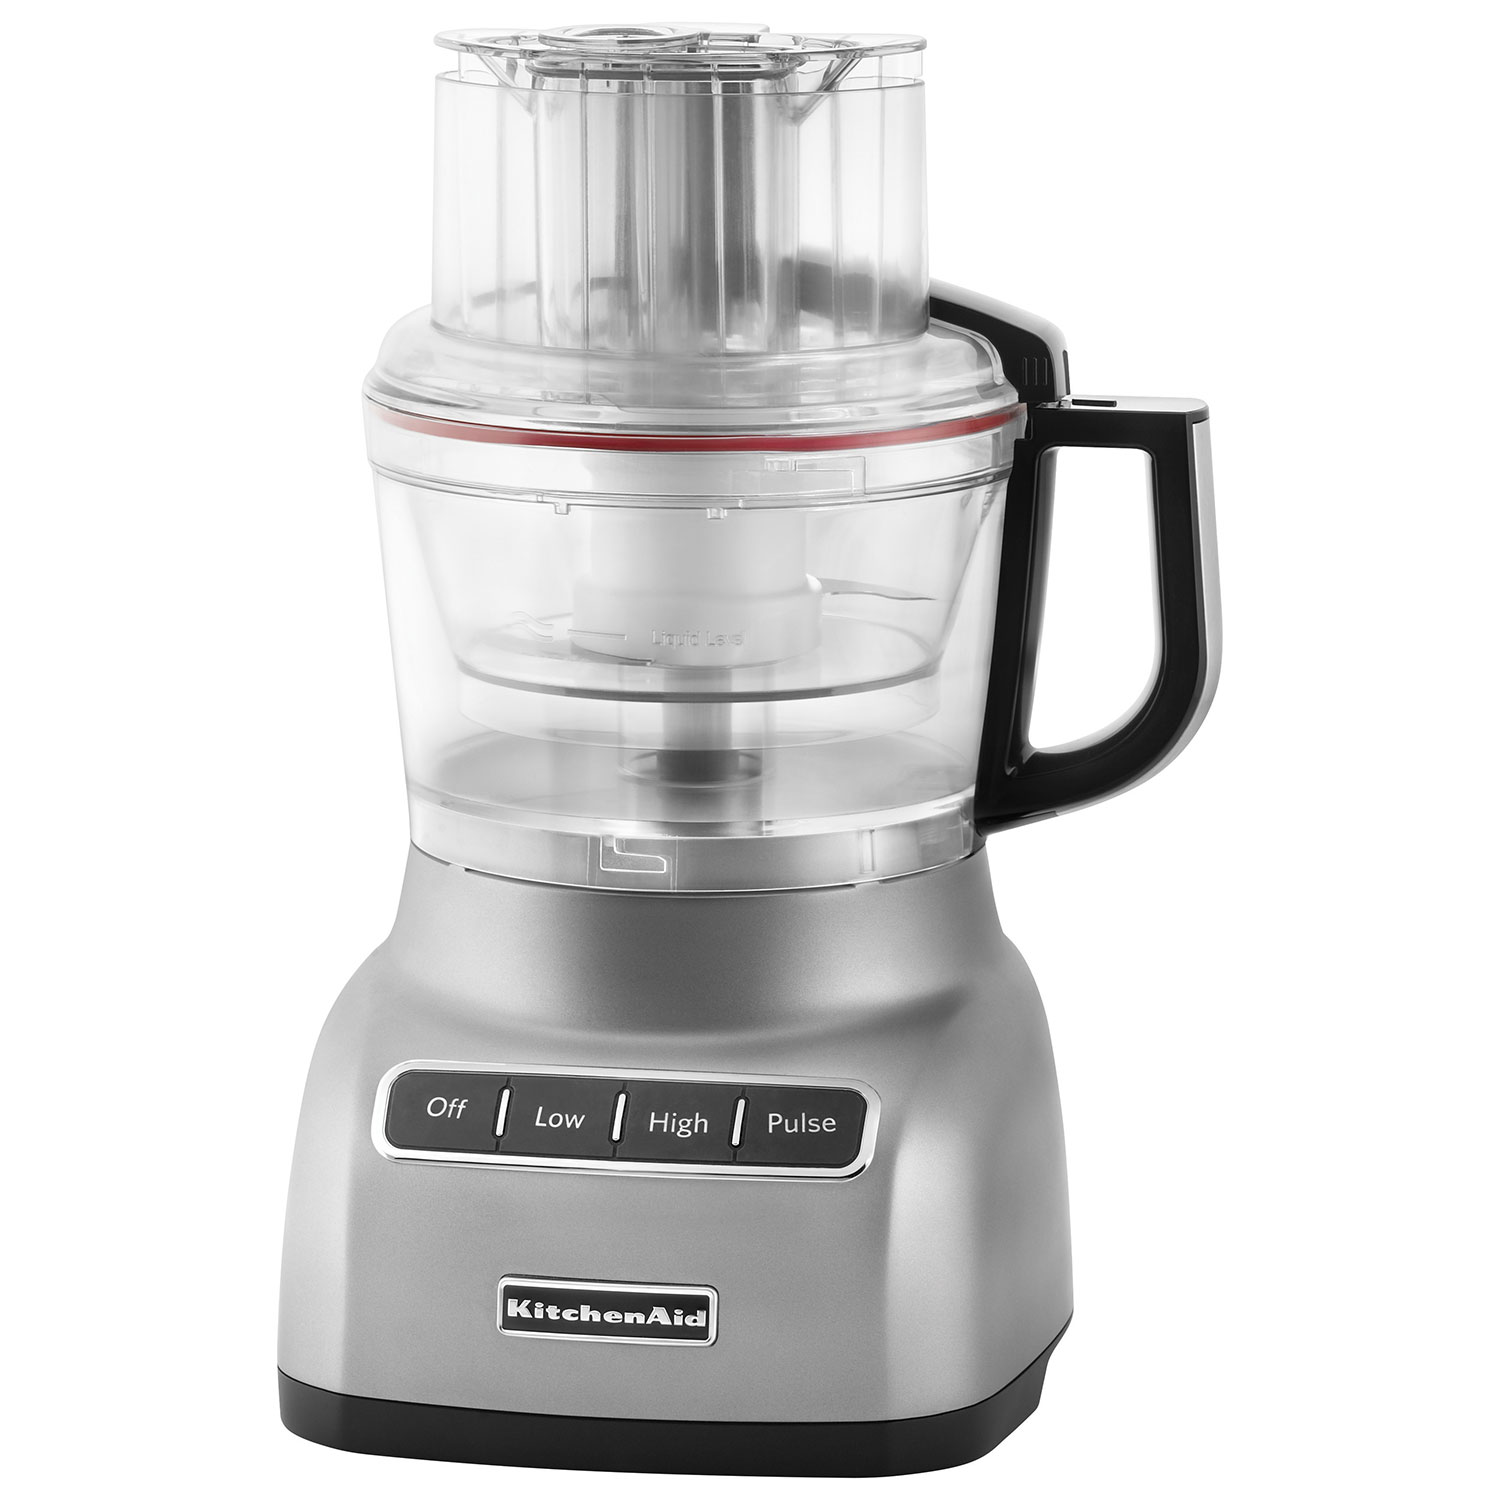 Coloured Small Kitchen Appliances Small Kitchen Appliances Blenders Microwaves Food Processors